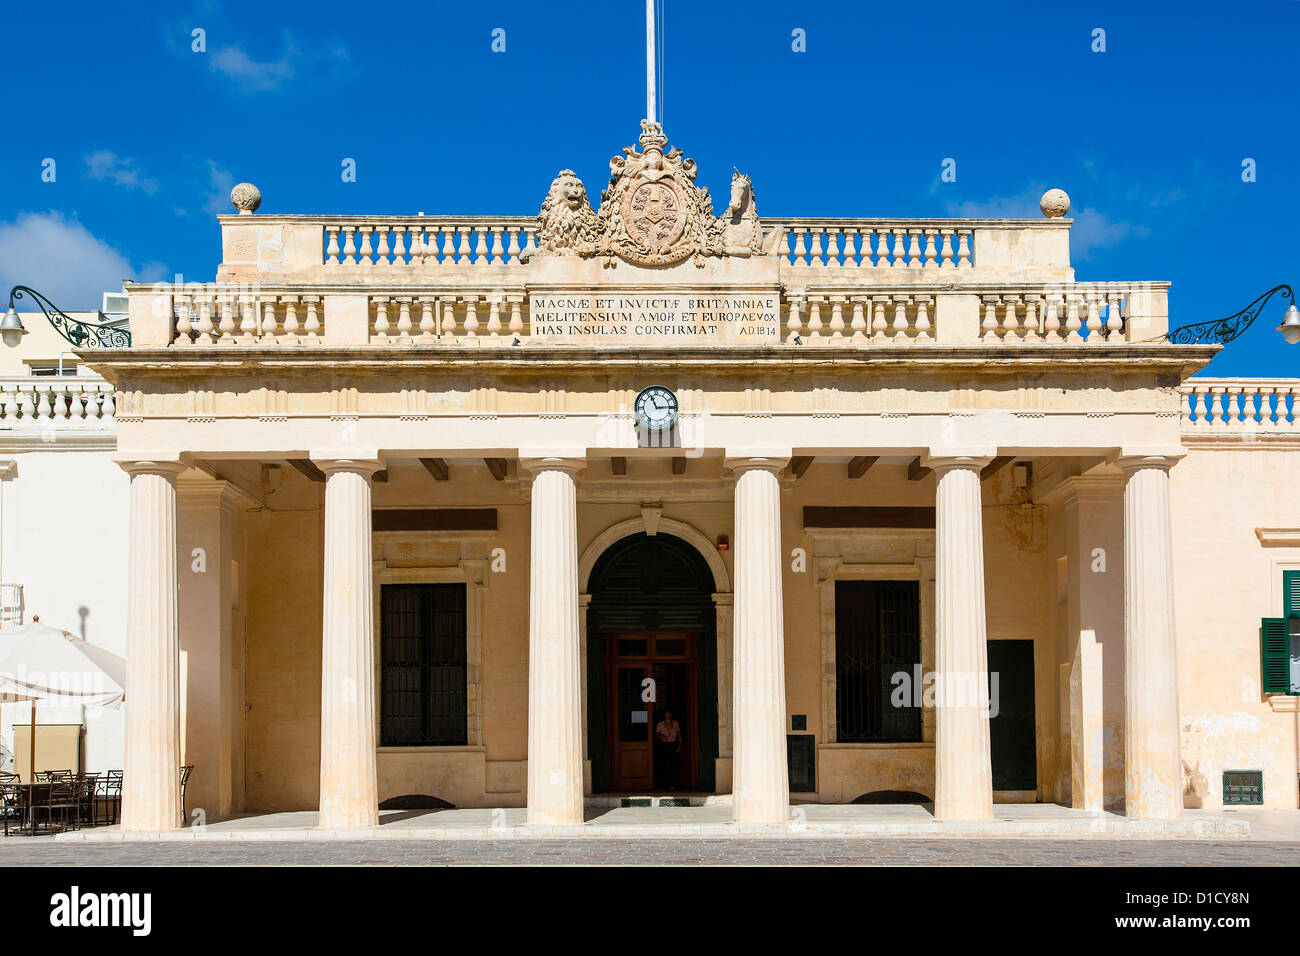 A Government building on St George's Square, Misrah San George or Palace Square, in Valletta - Stock Image